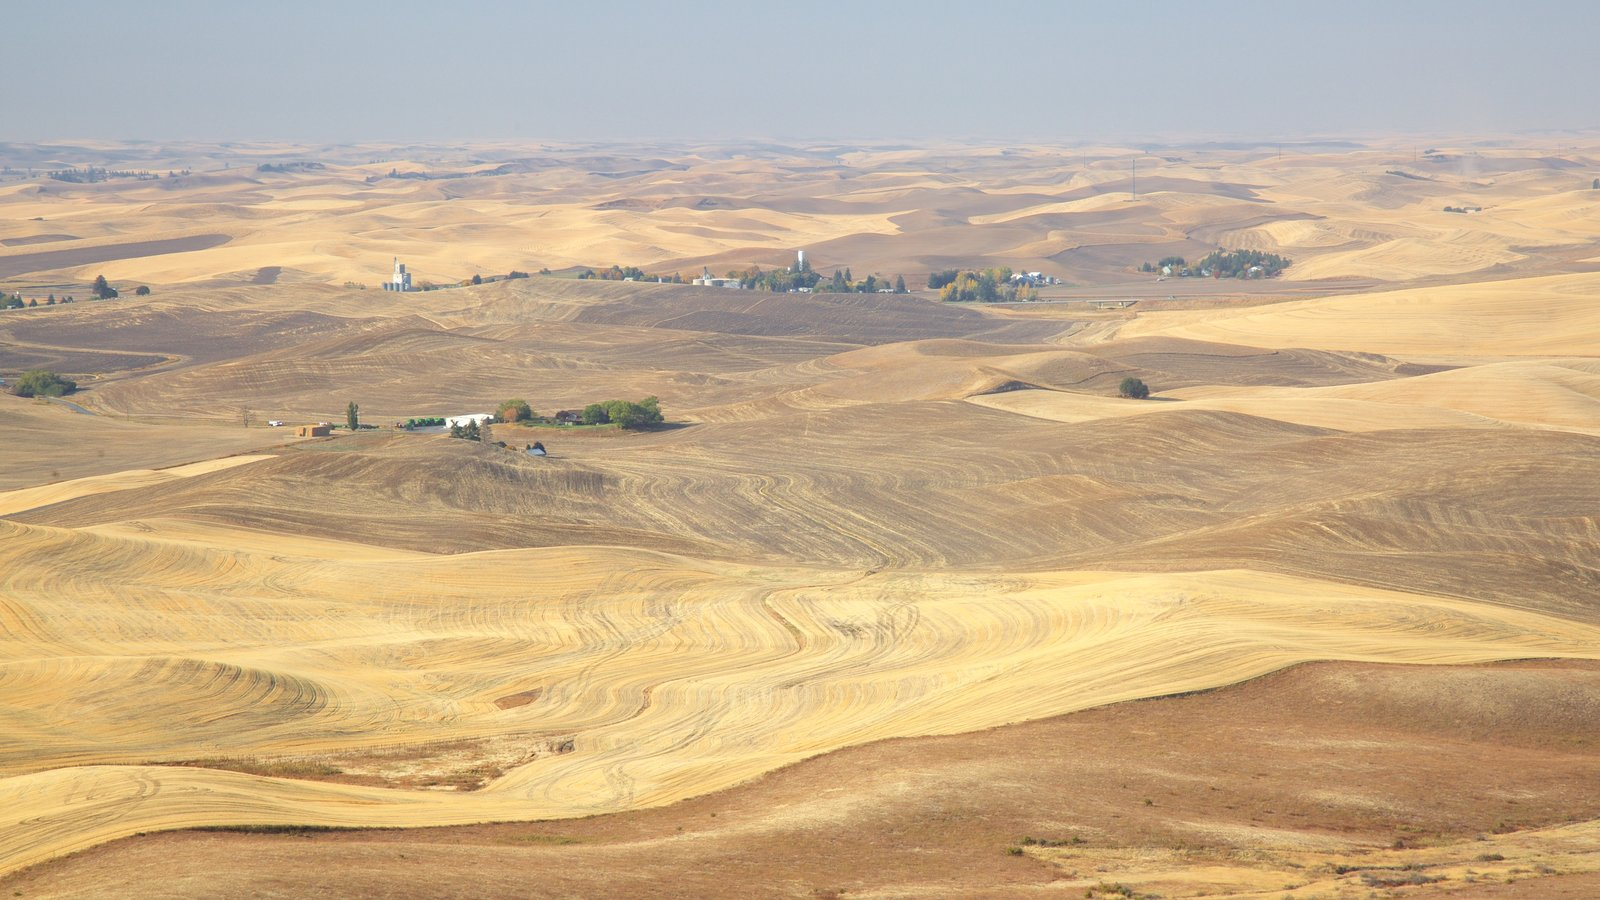 Steptoe Butte State Park which includes desert views and landscape views